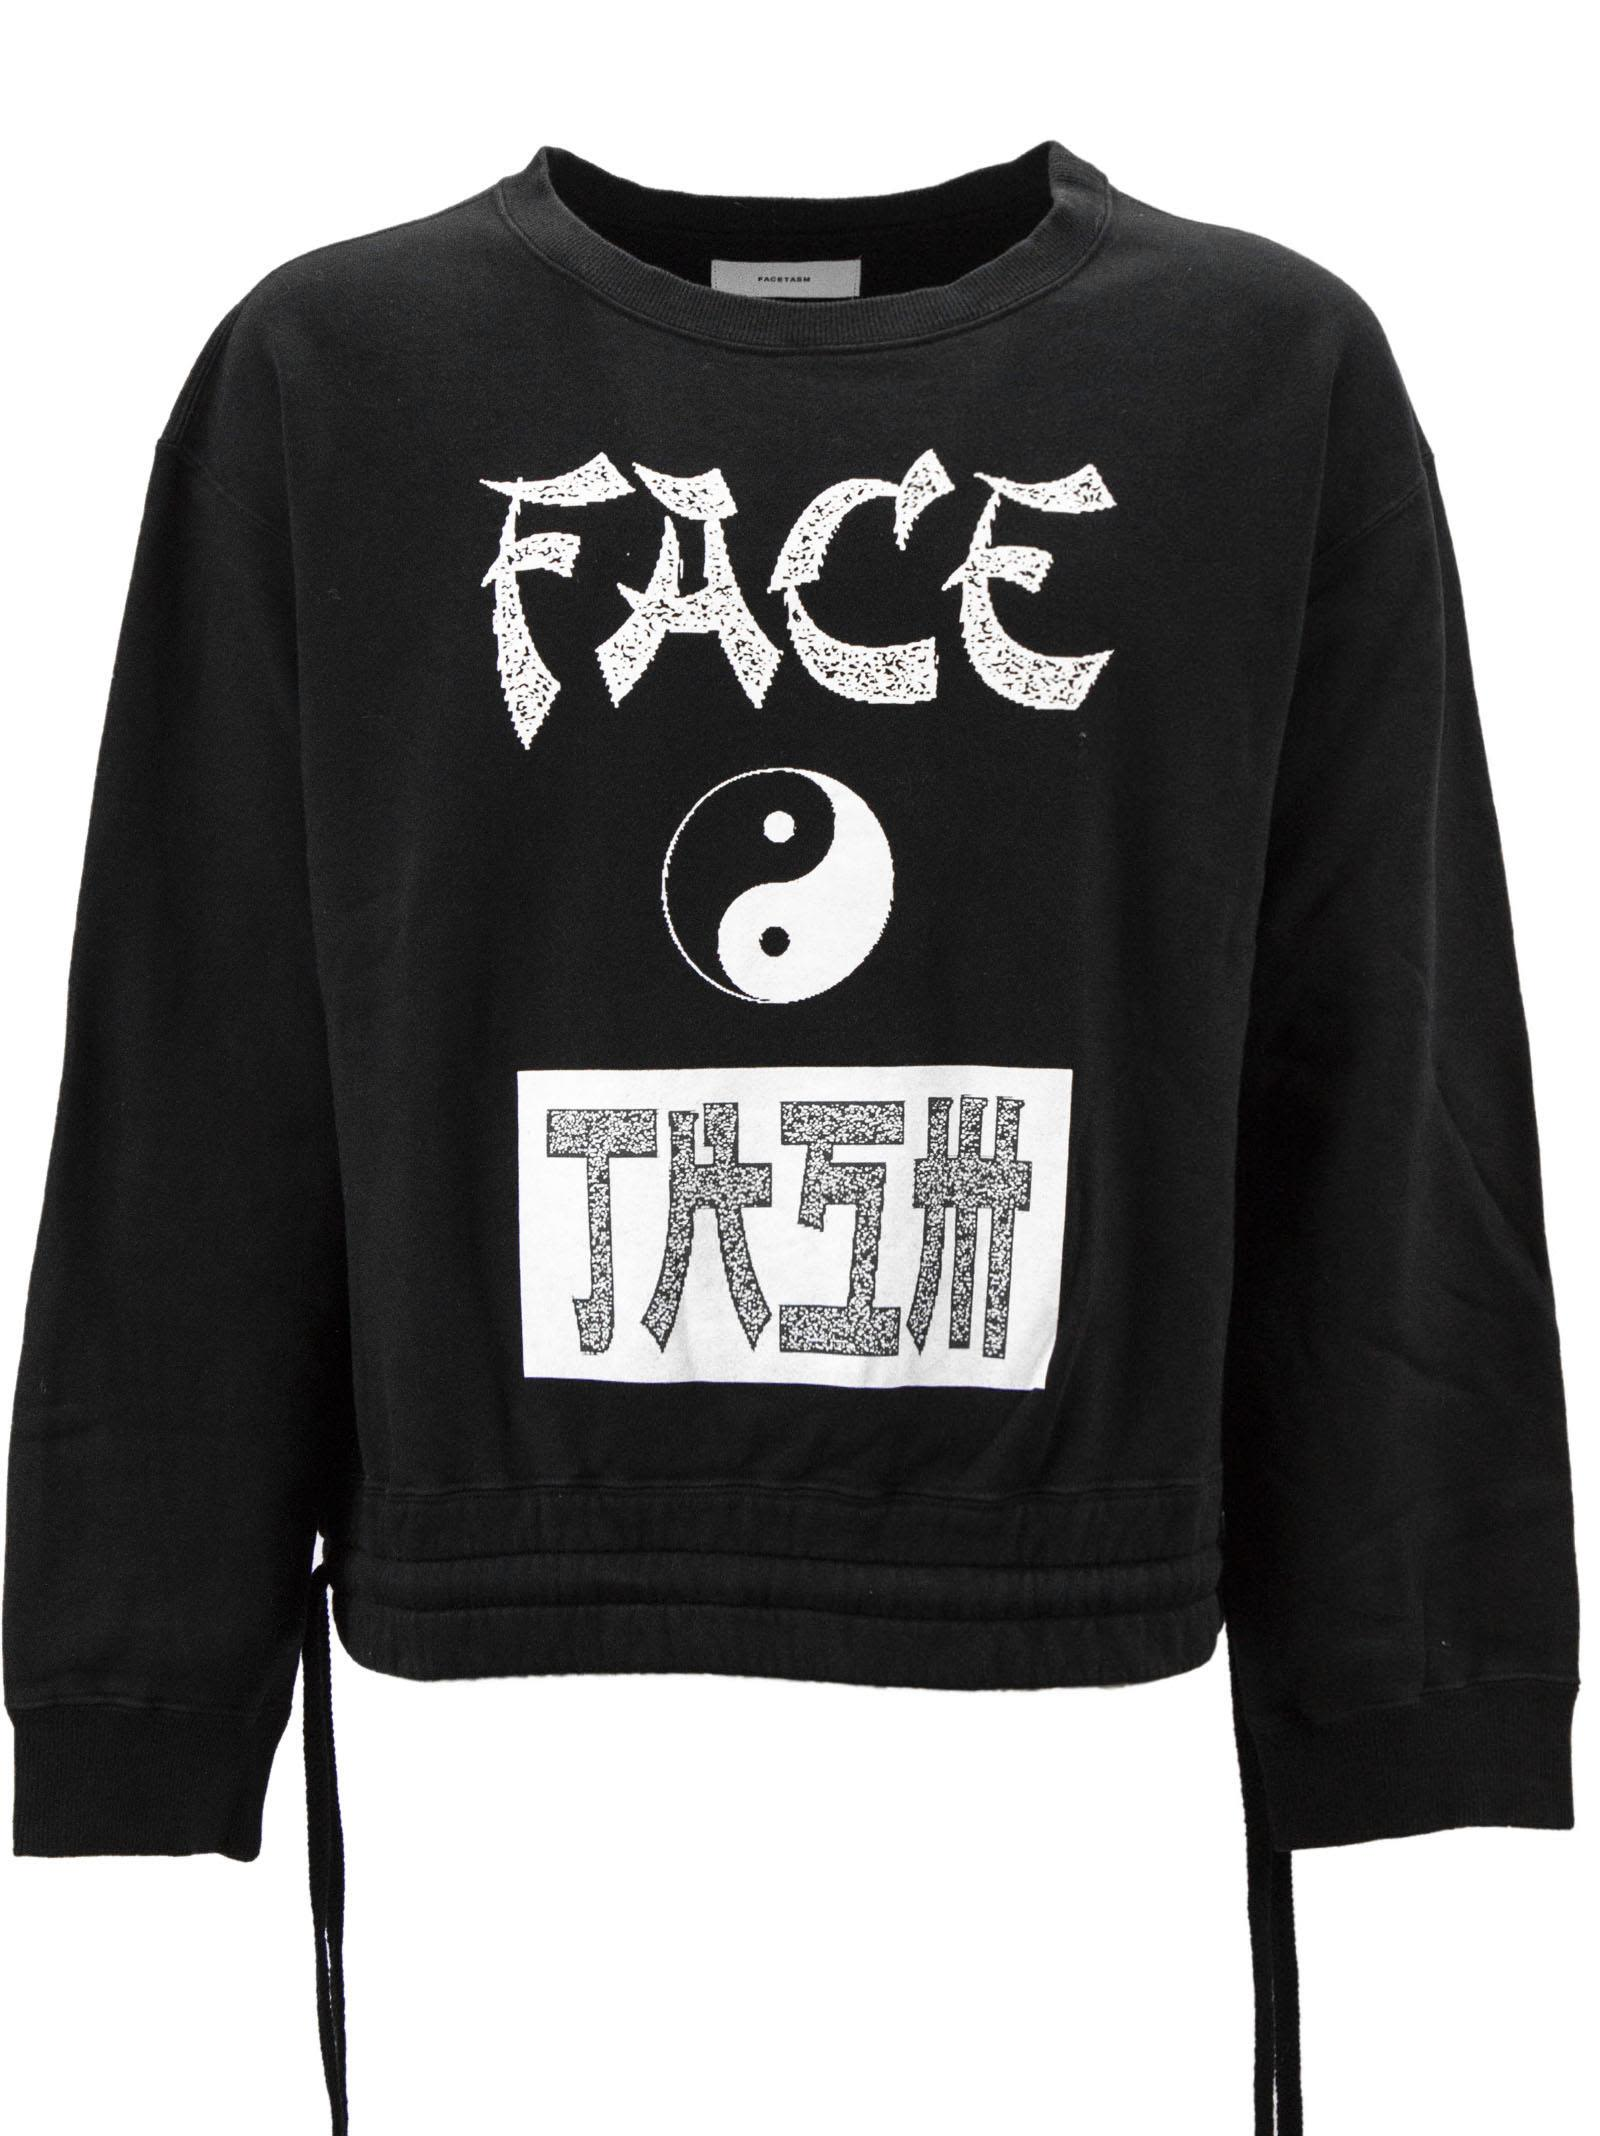 FACETASM Black Cotton Yin-Yang Print Sweatshirt.